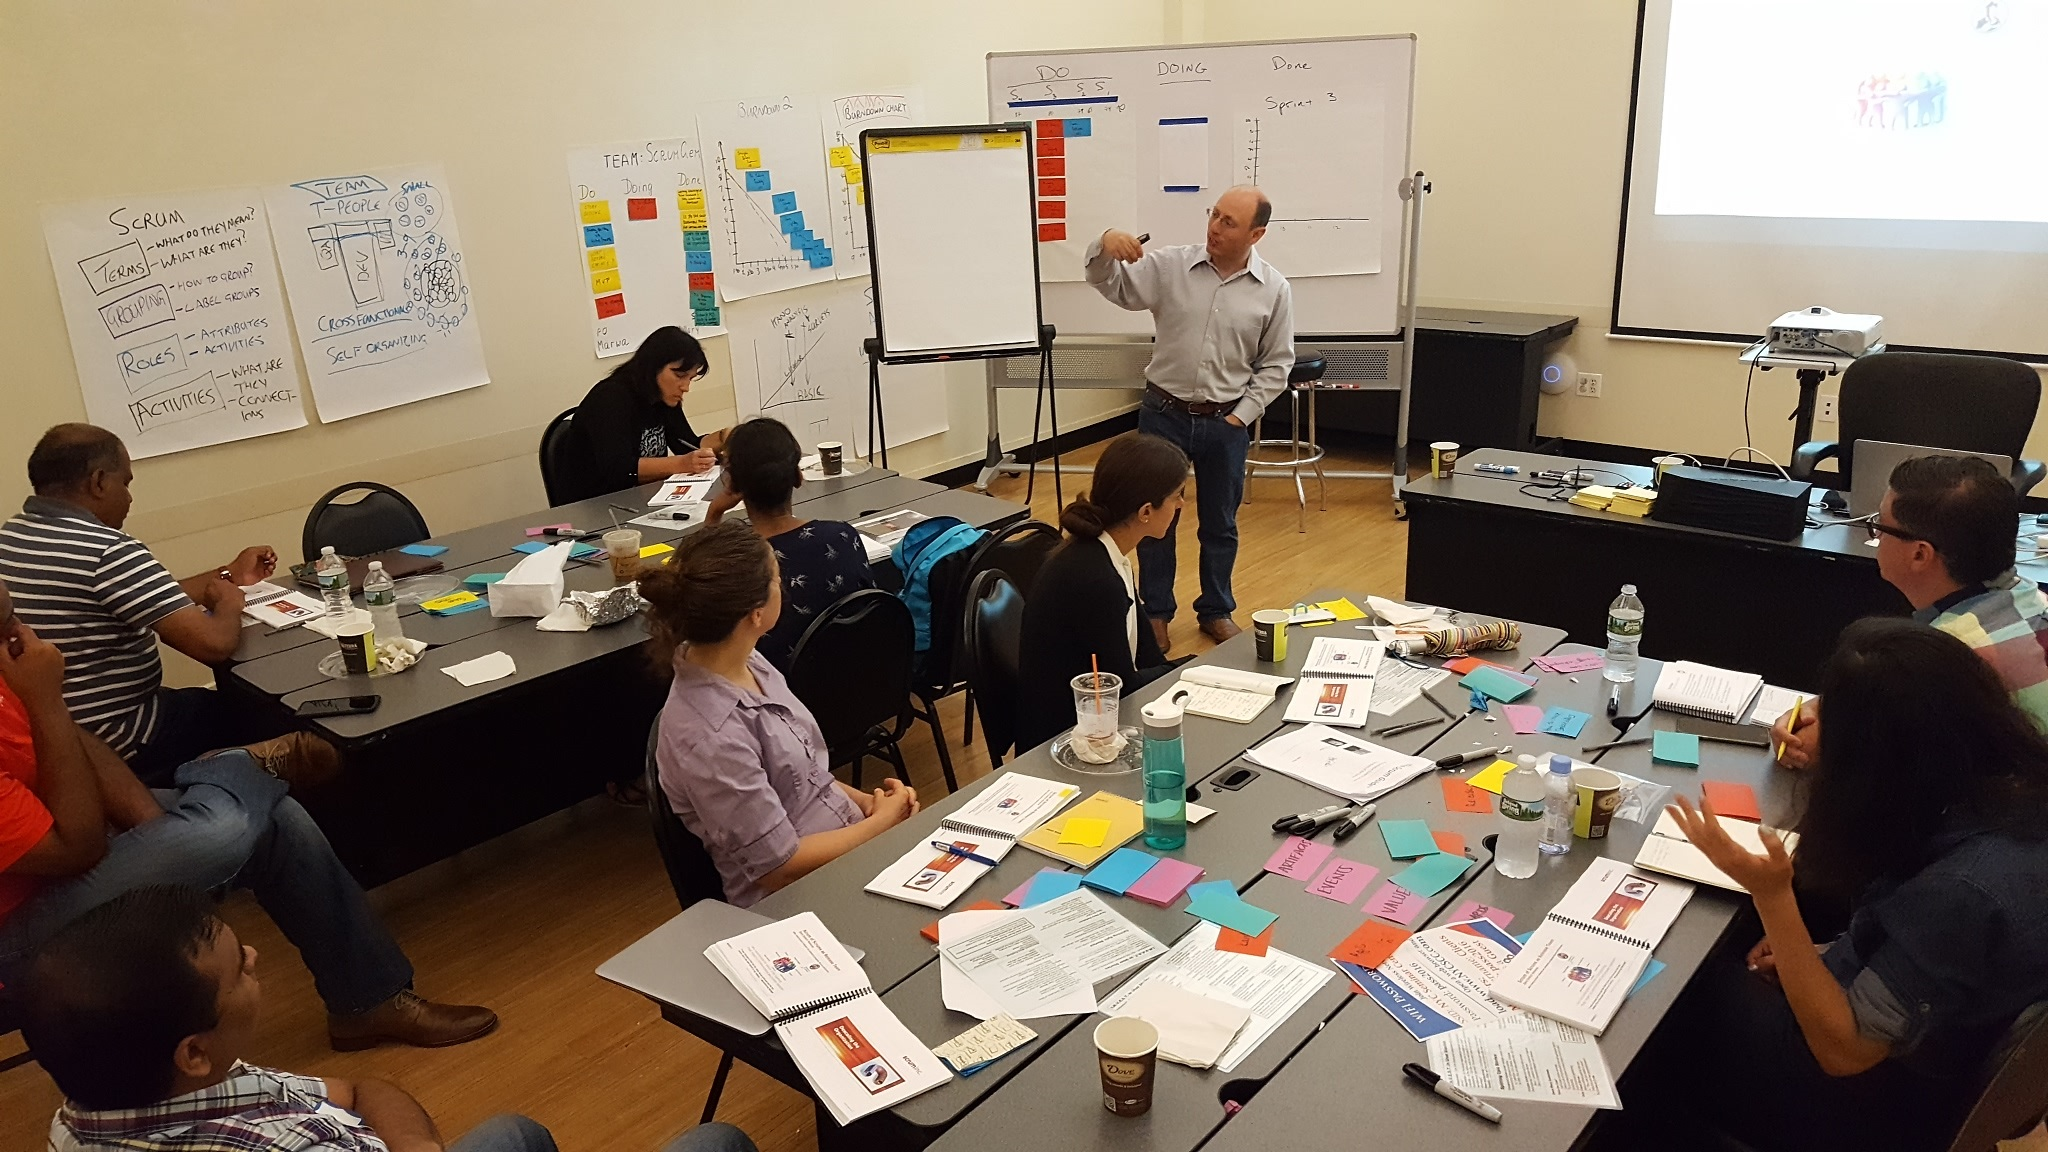 July 7 8 Certified Scrum Product Owner Course With Scruminc